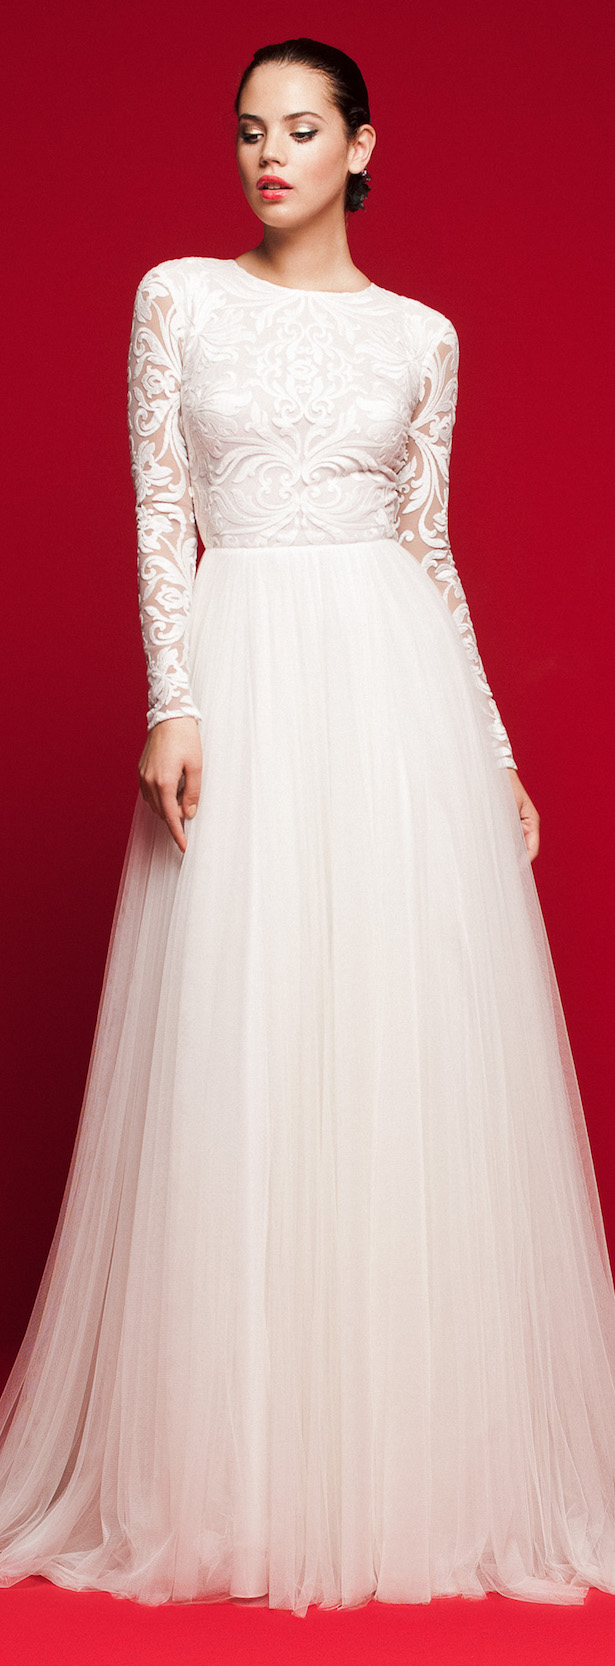 Long sleeve ball gown Wedding Dress with tulle skirt and lace top - Daalarna 2018 Love Story Bridal Collection